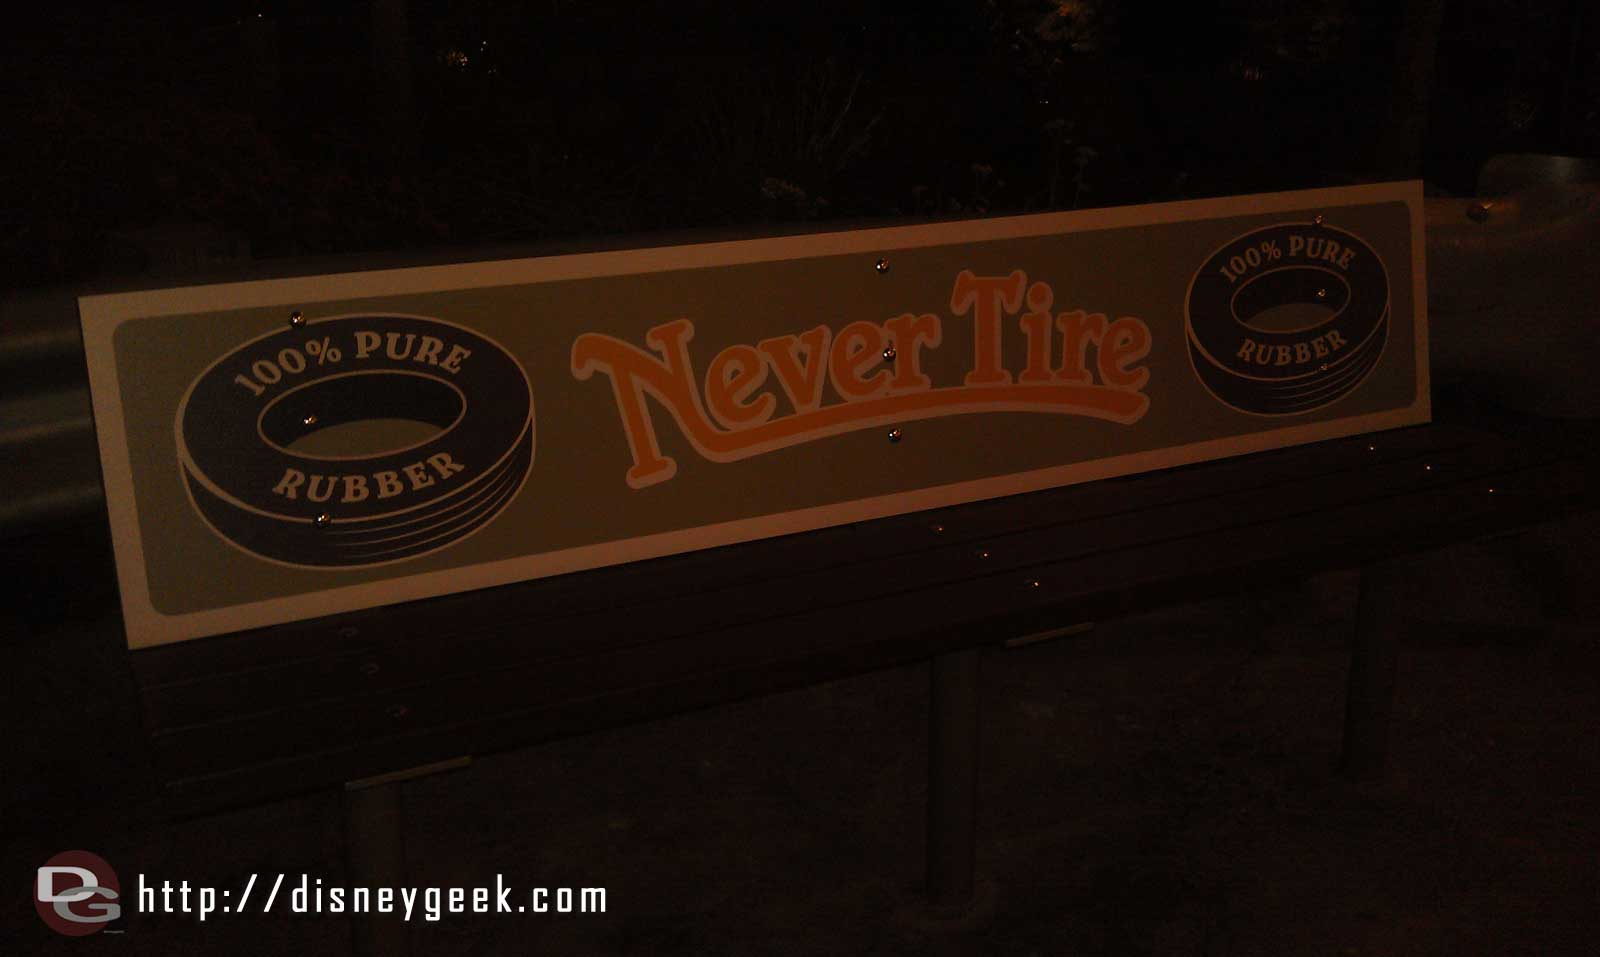 Never Tire benches near the Flying Tires